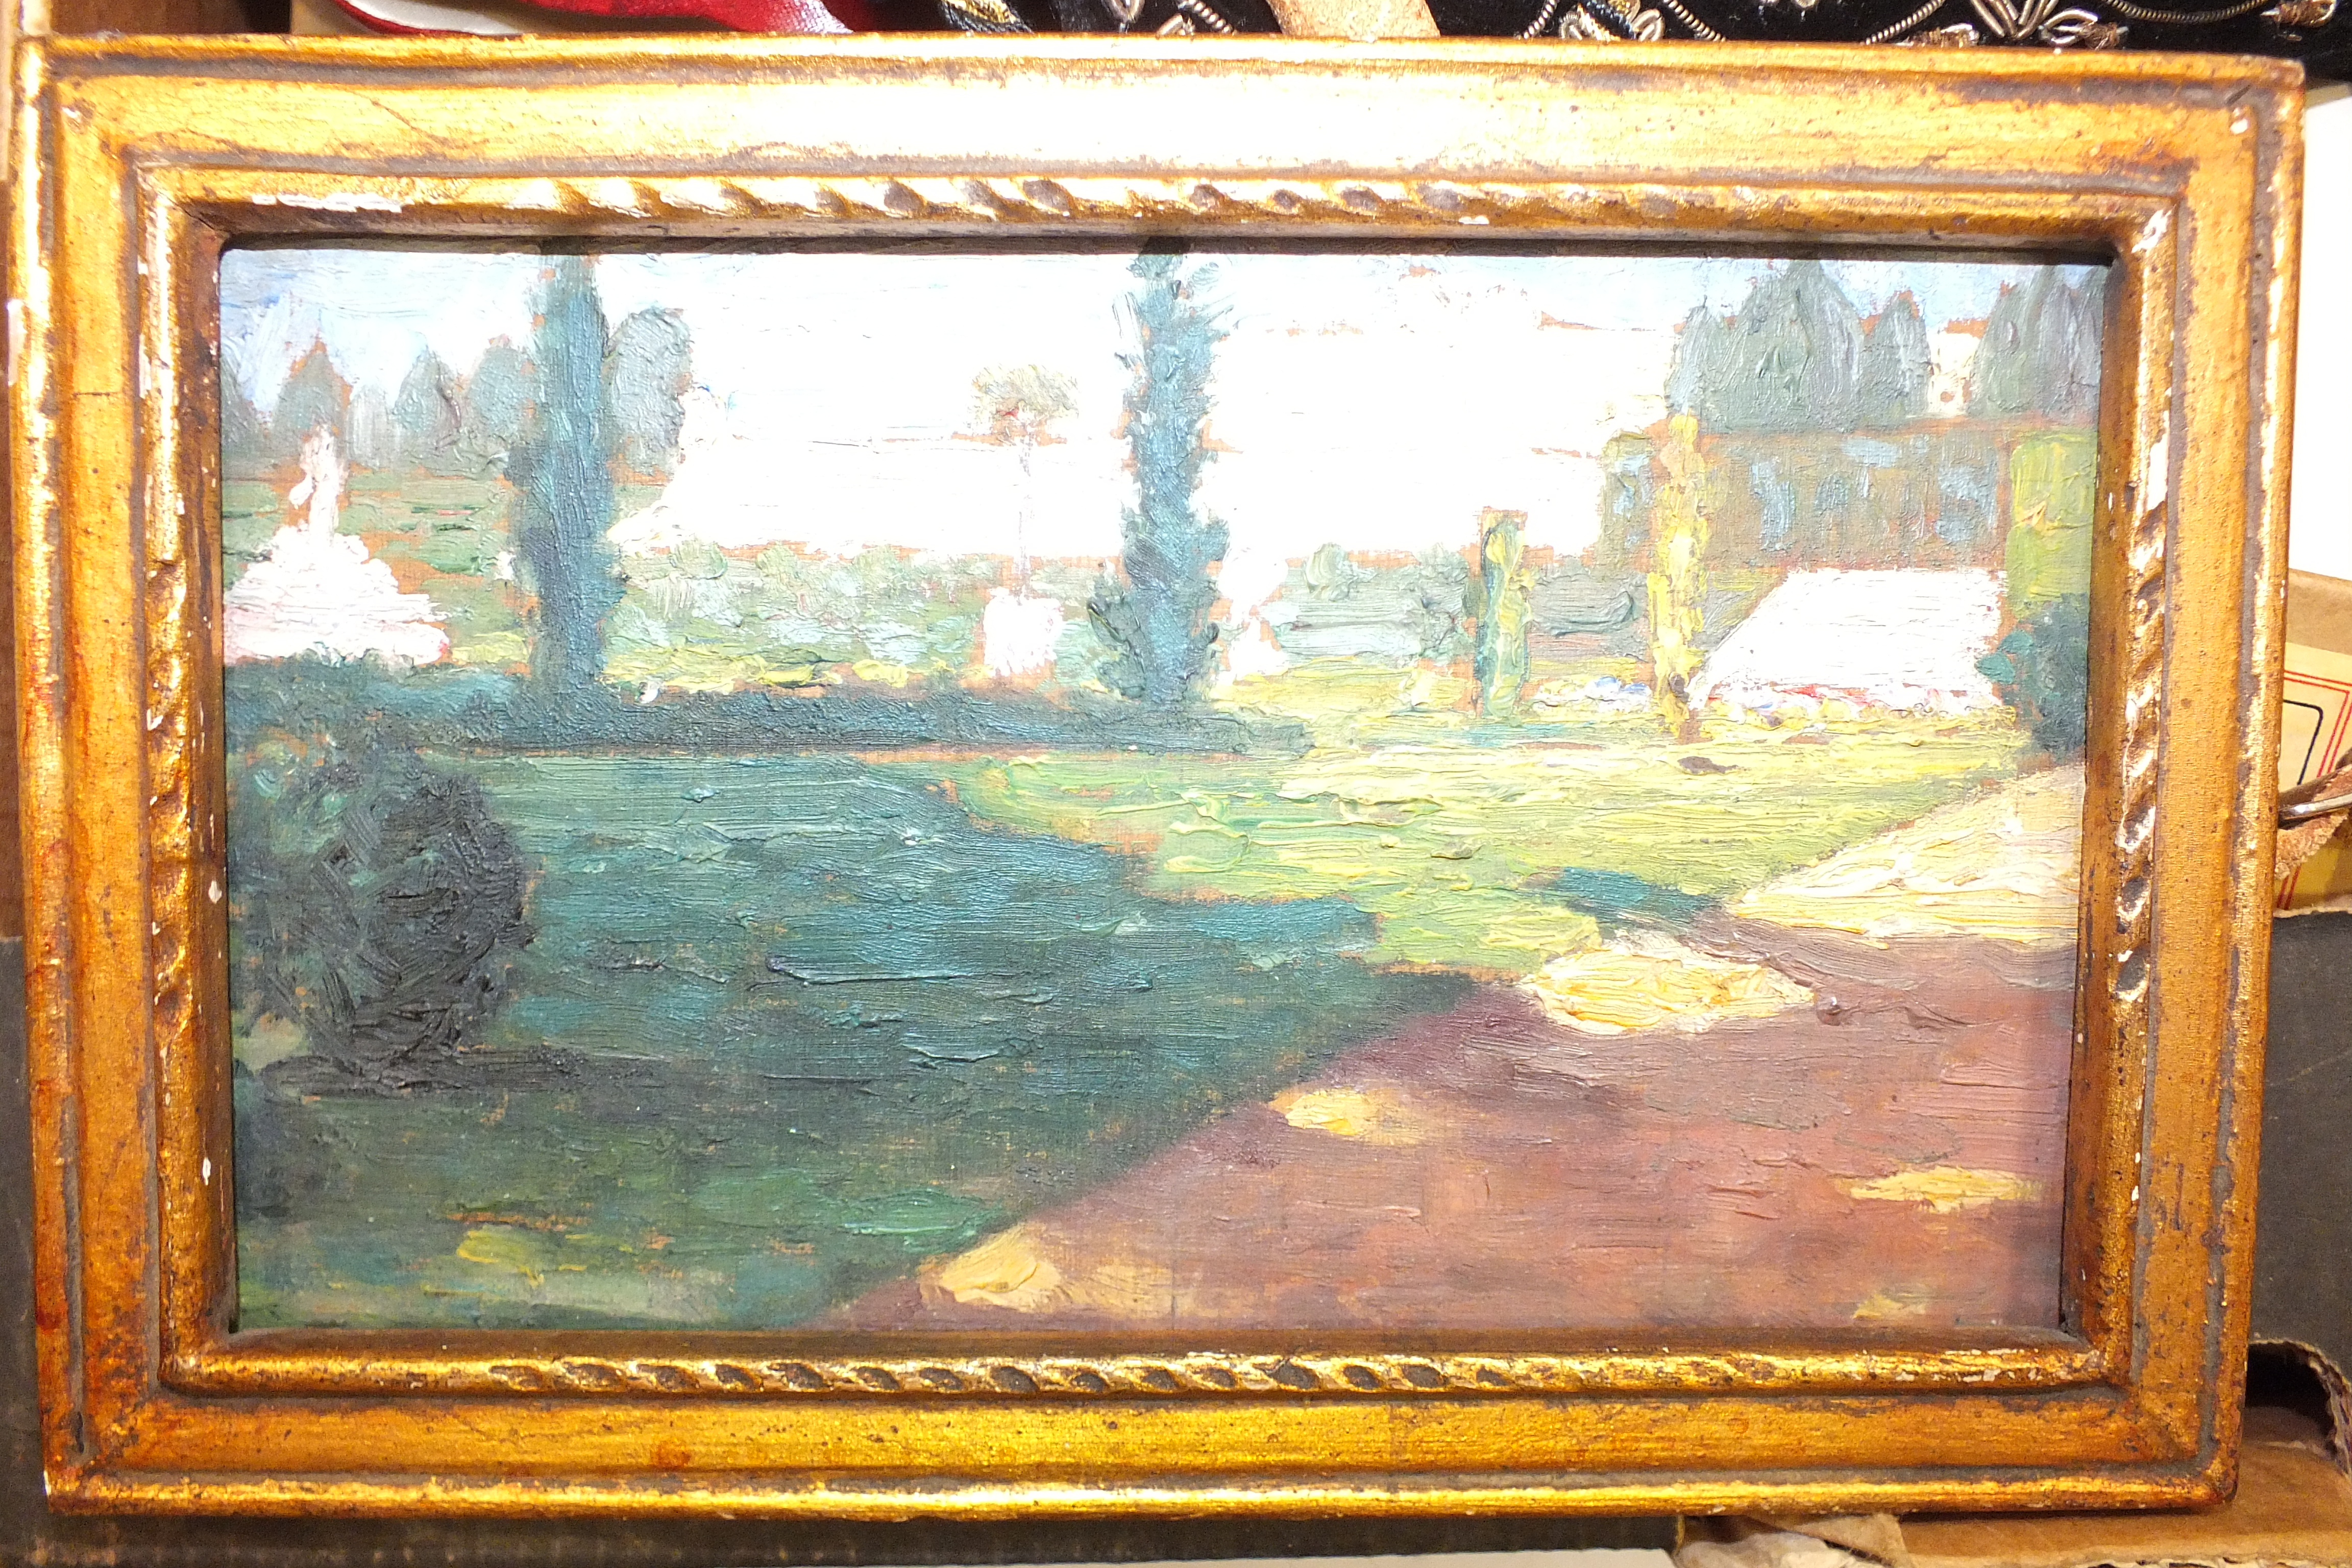 Ch Faurie?, 'Versailles', oil on panel, inscribed in pencil and dated 1910, 9 x 16cm, a pair of - Image 2 of 2